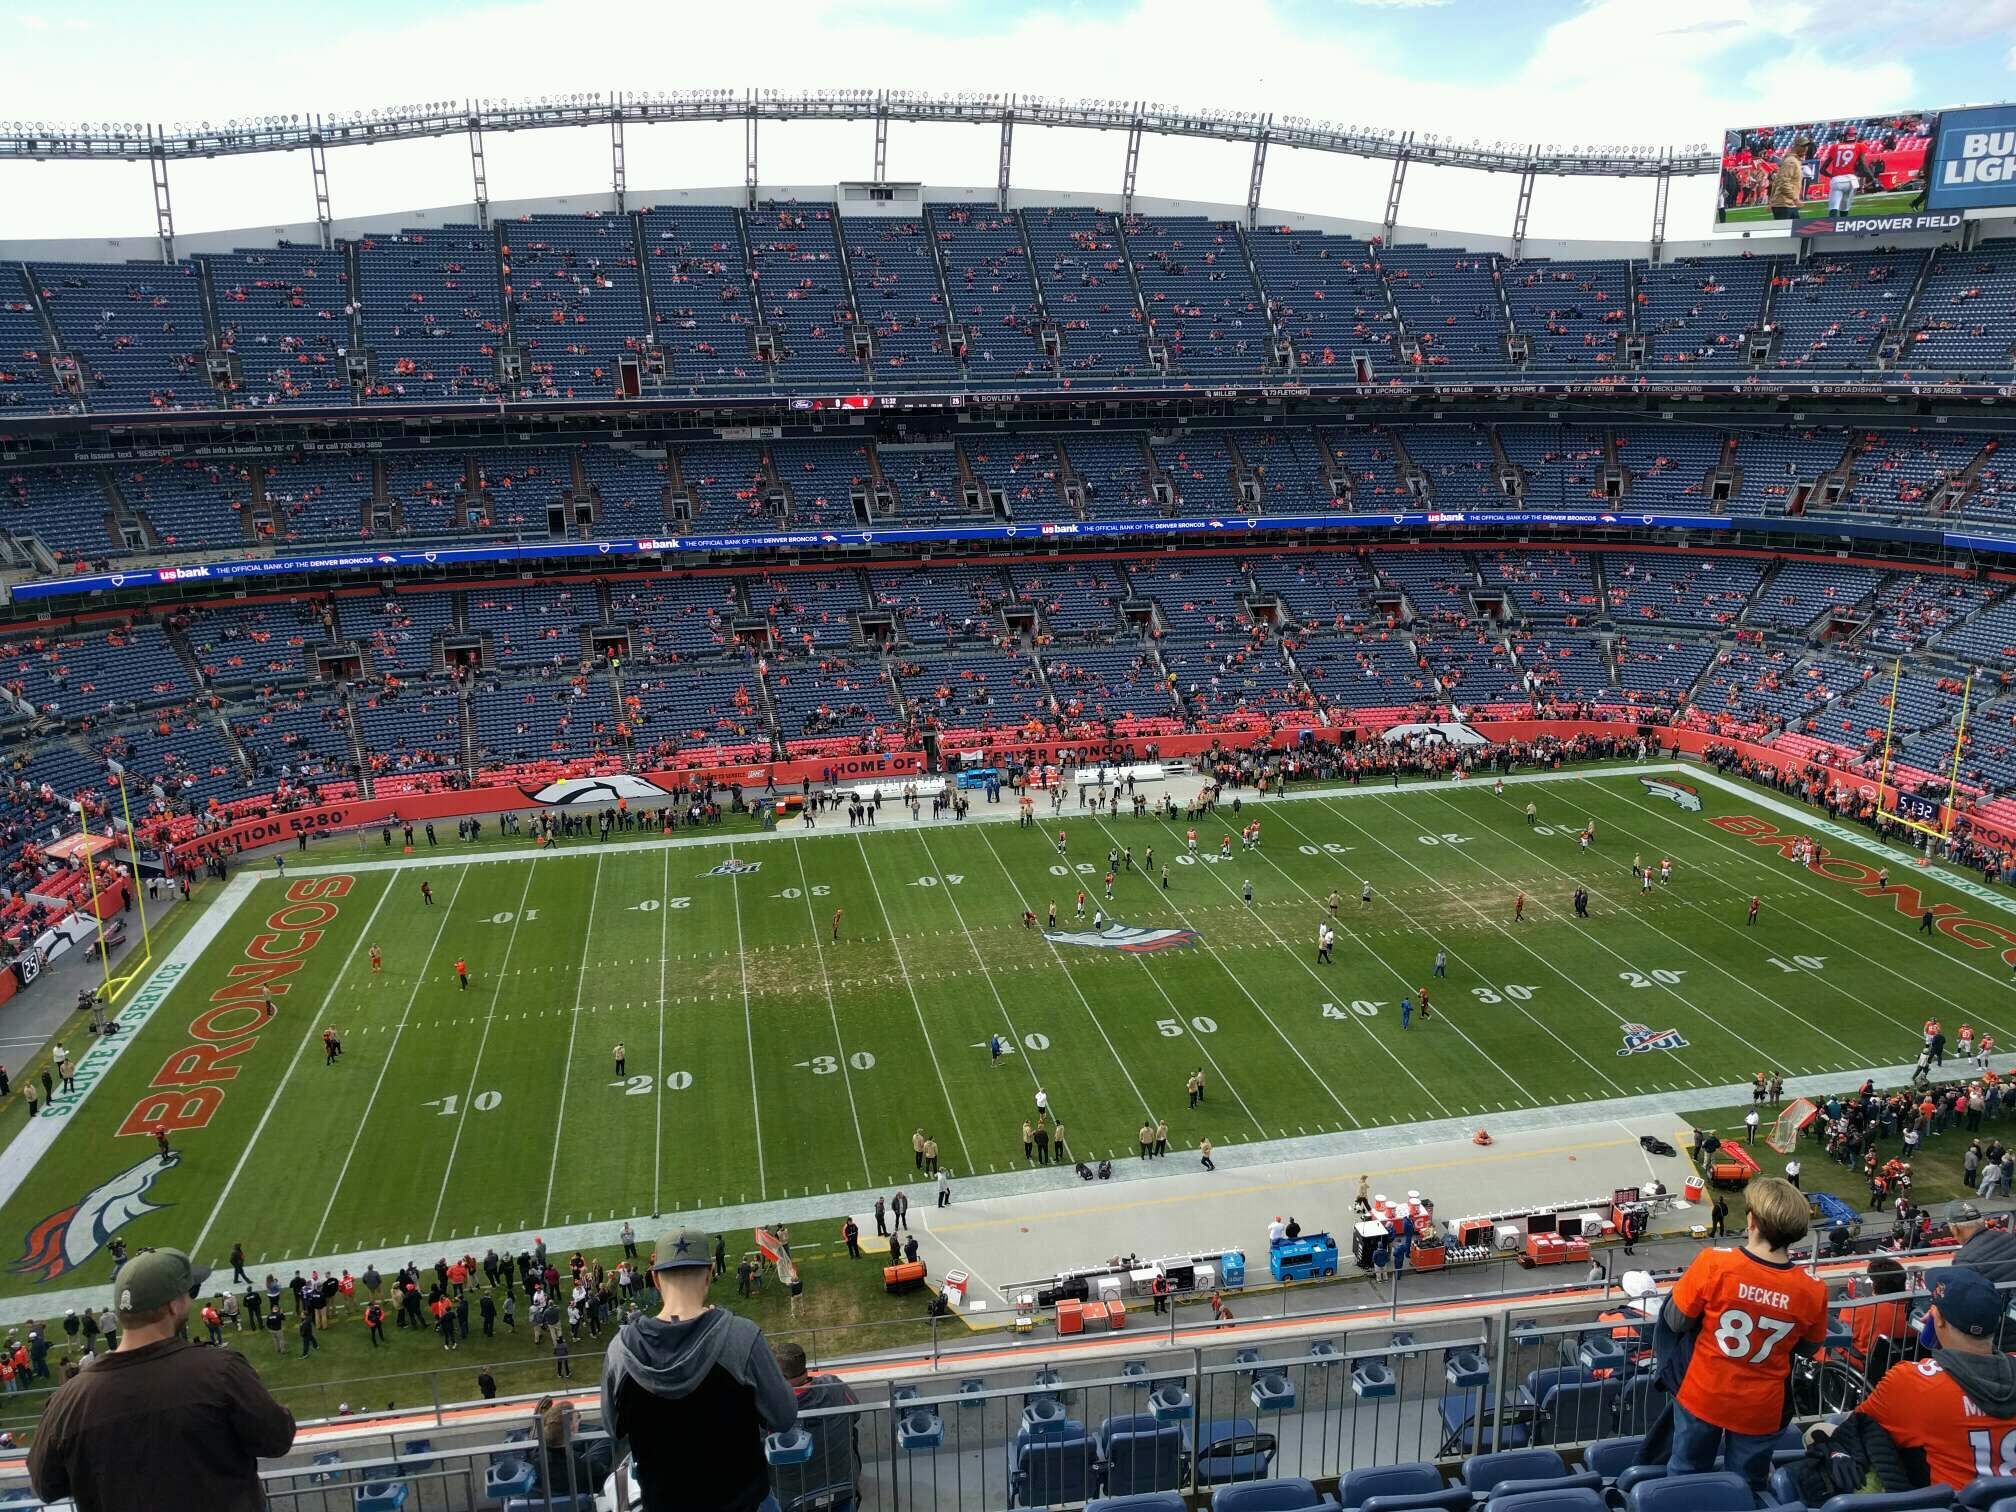 Empower Field at Mile High Stadium Section 536 Row 10 Seat 14